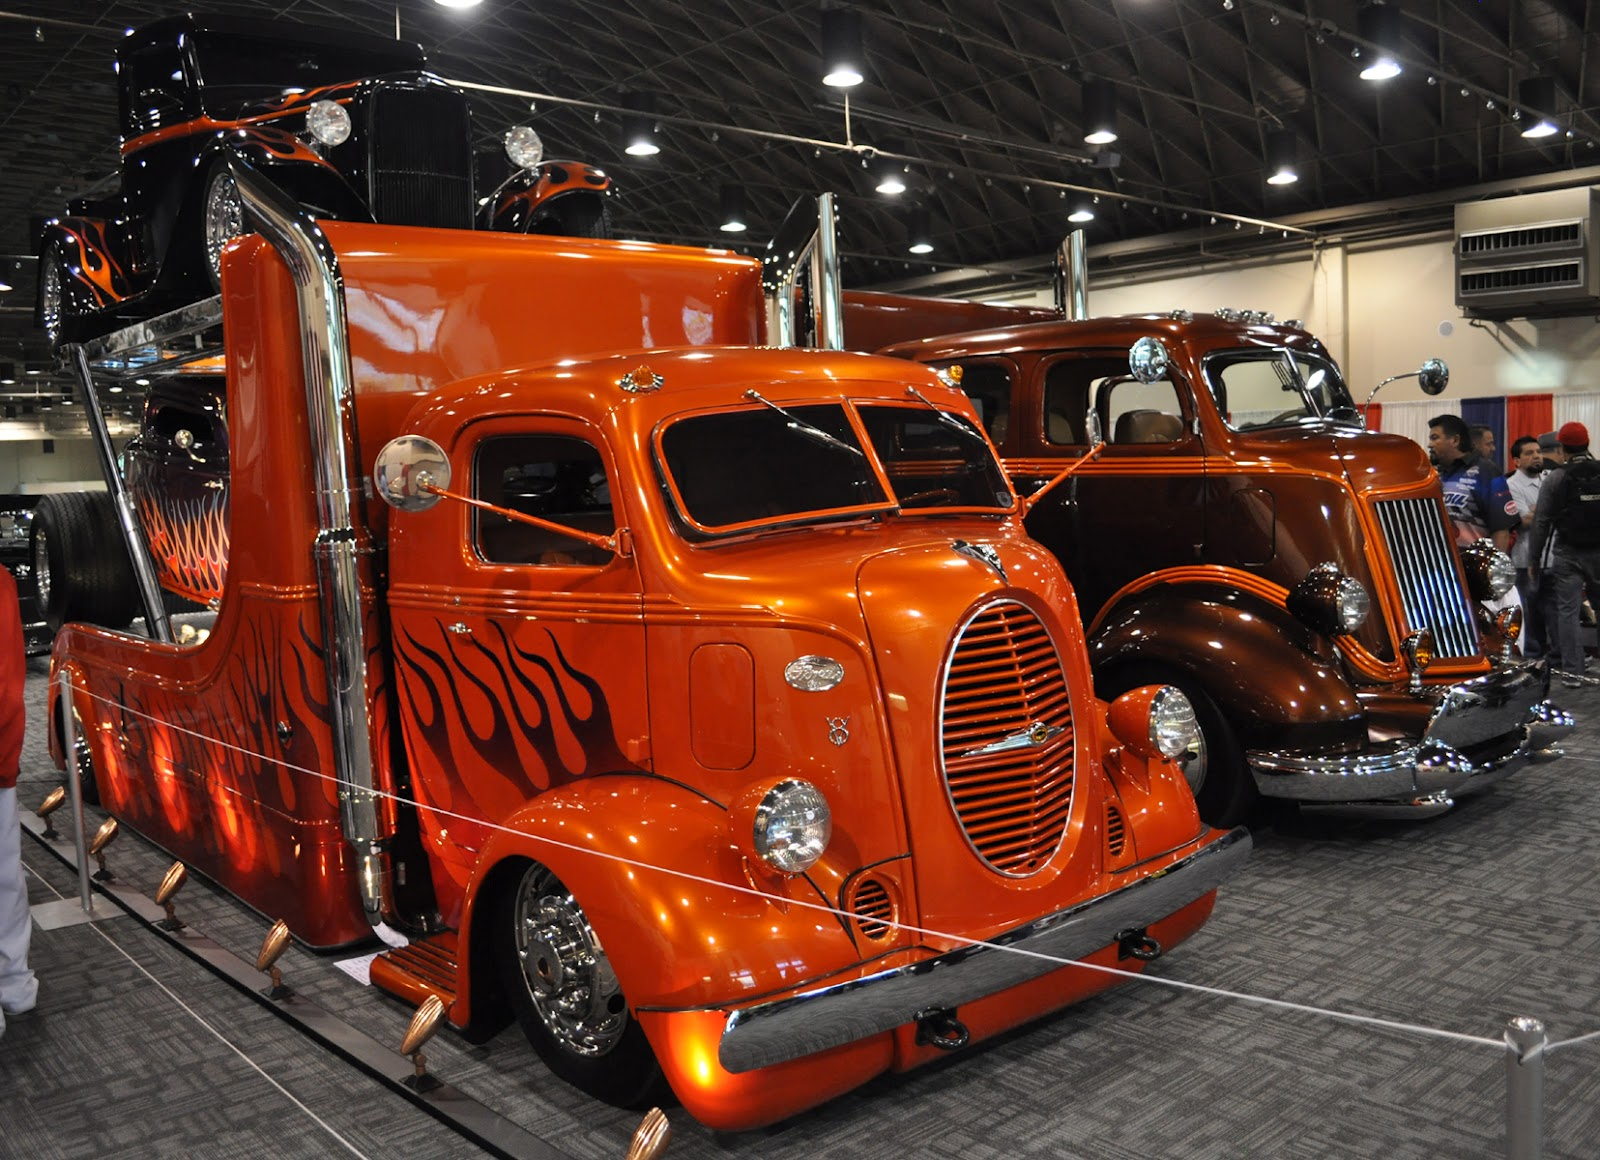 love my car: The cool hot rod haulers were teamed up in a display at ...